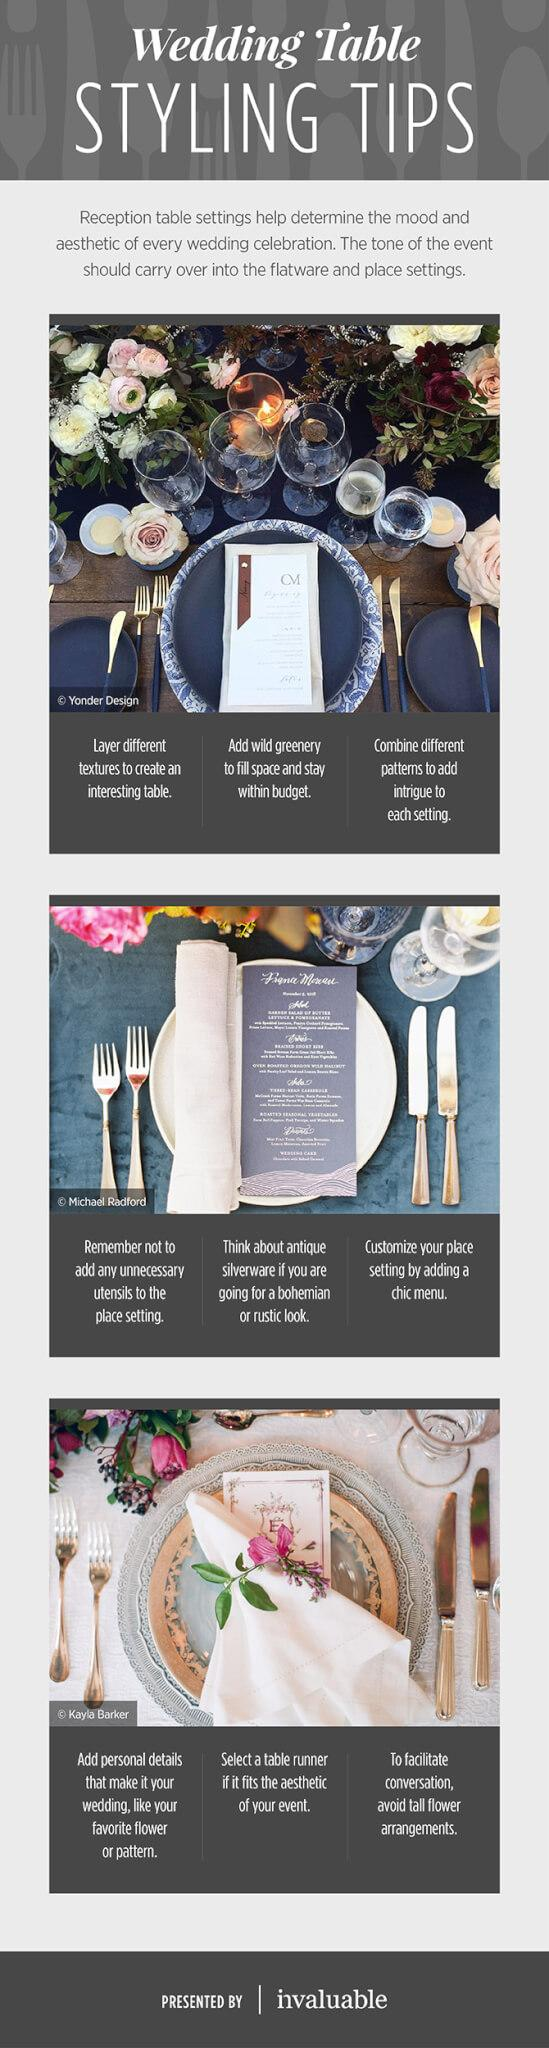 invaluable-wedding-table-tips-infographic-v4